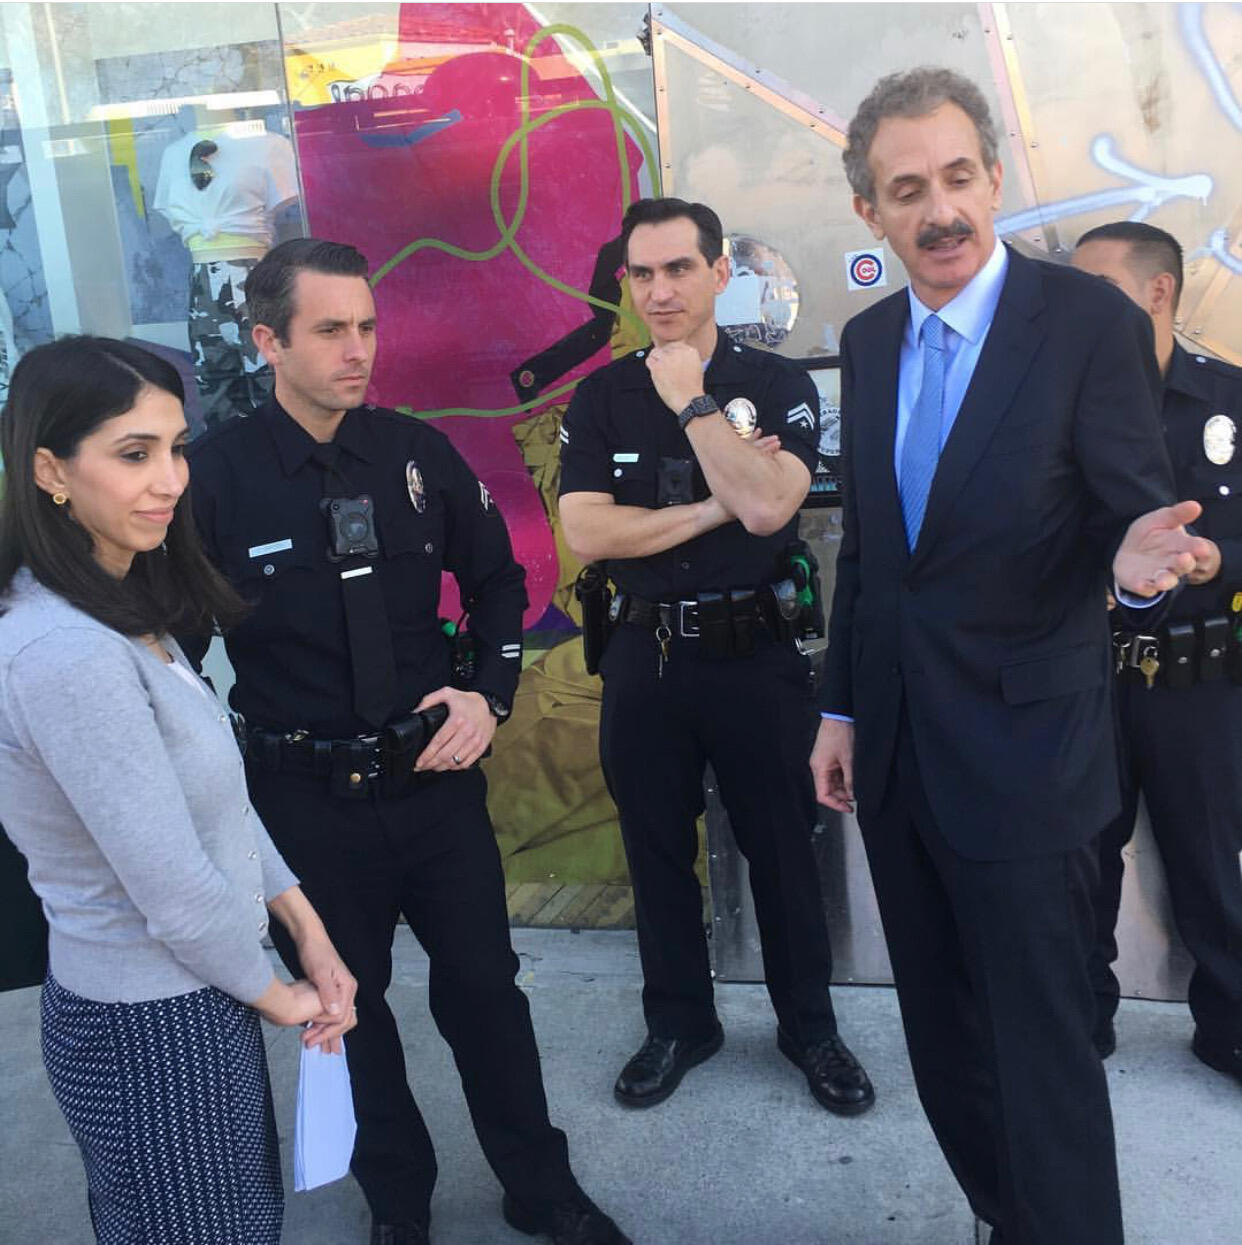 Community Briefing (Los Angeles Police Department) &mdash